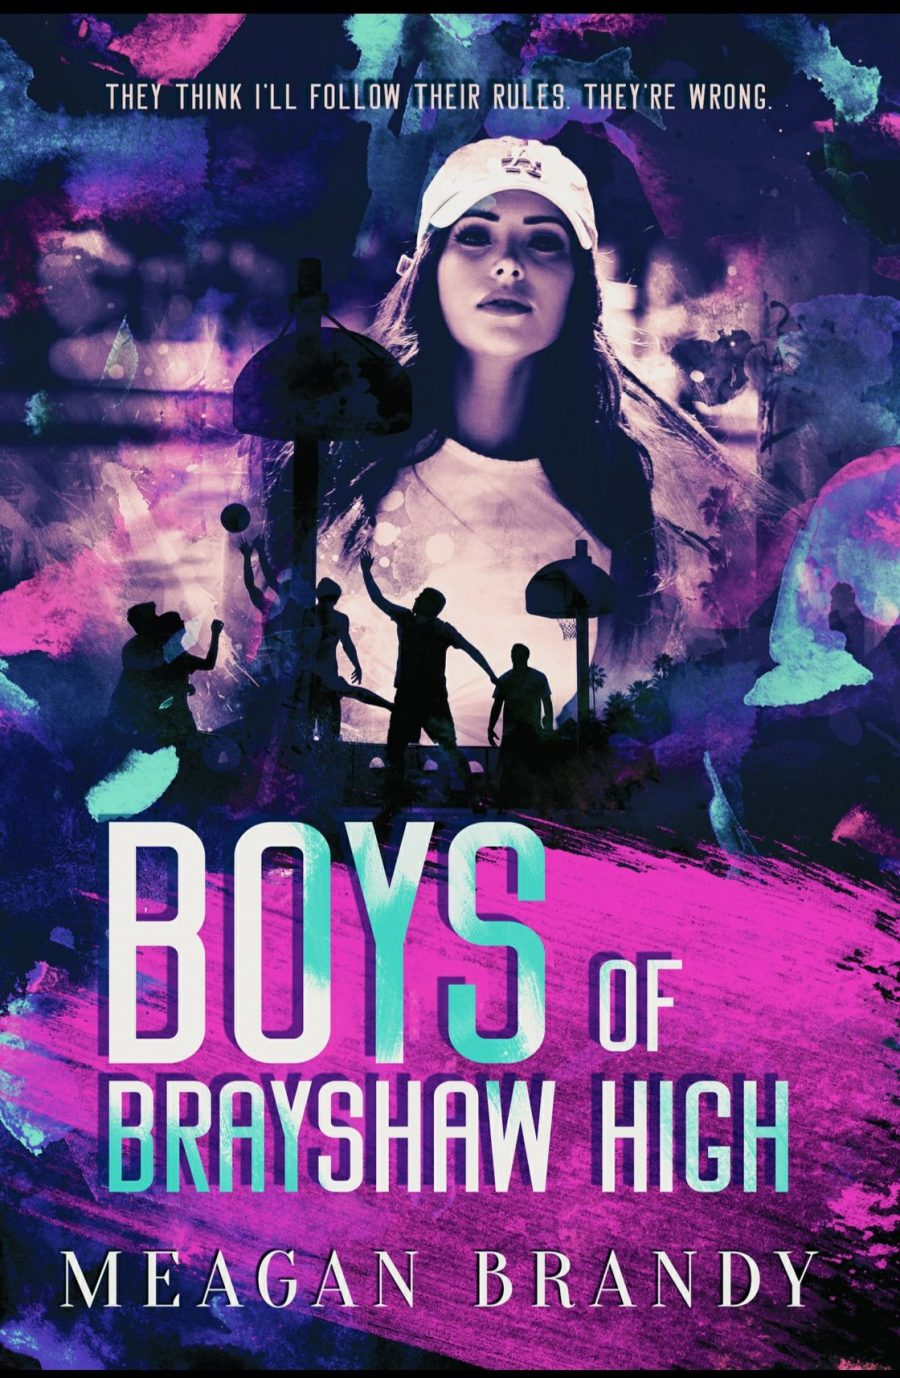 Boys of Bradshaw High by Meagan Brandy – A Book Review